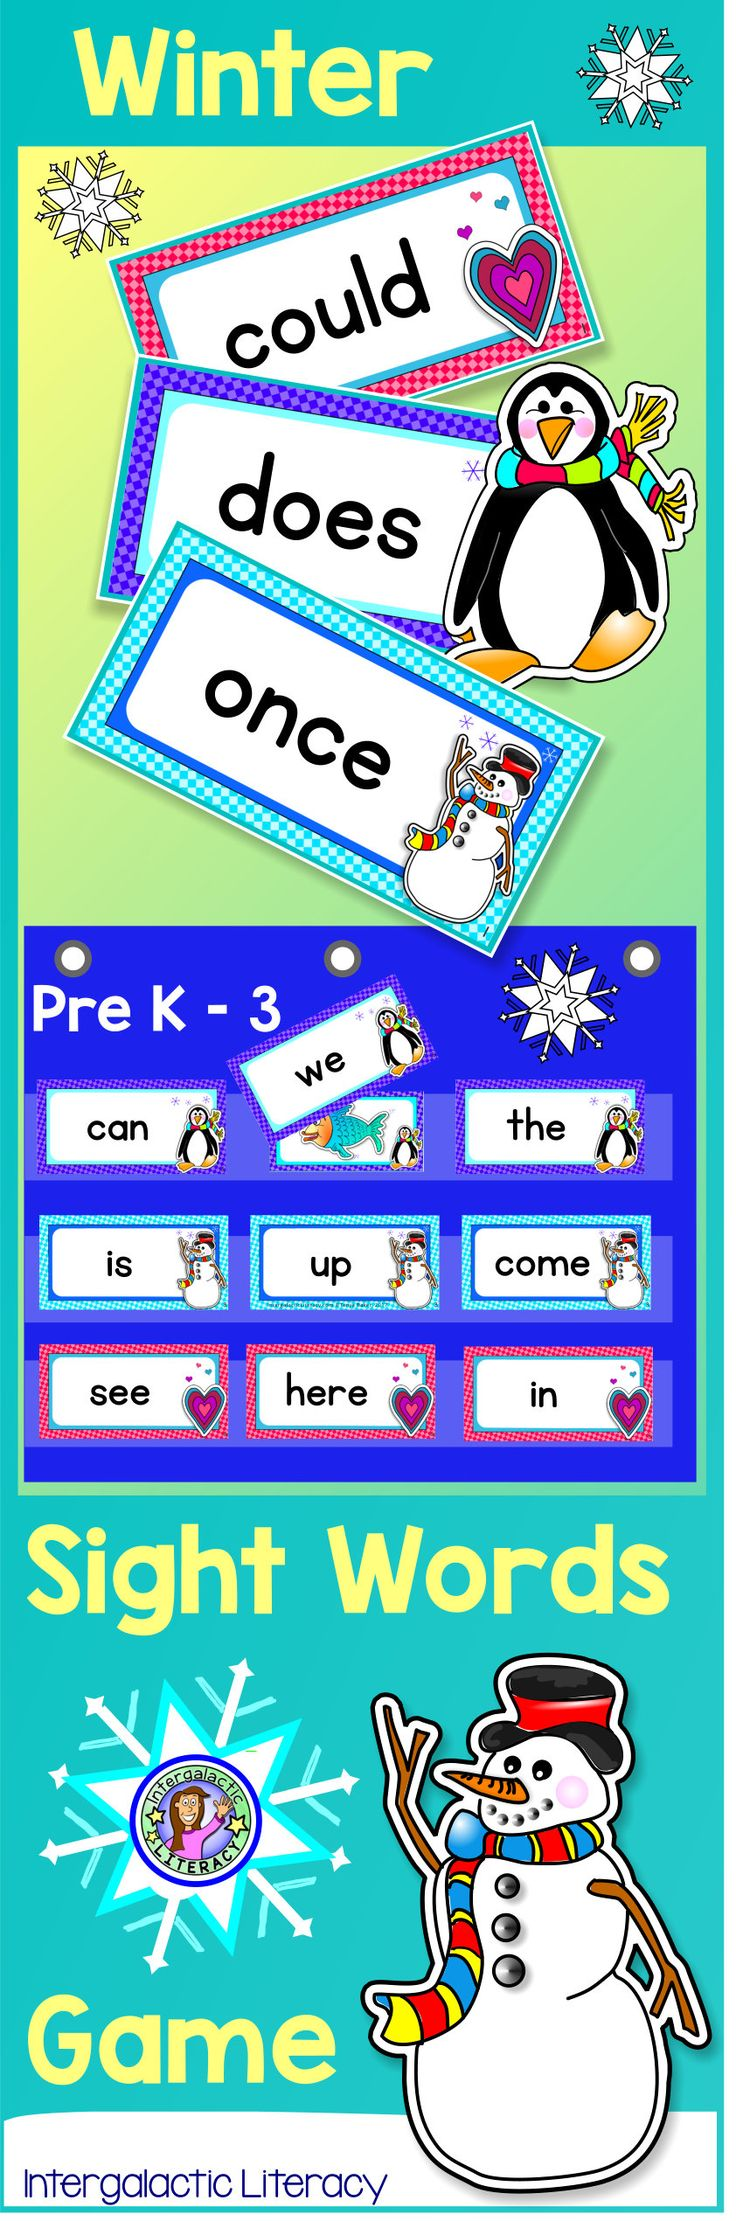 Perfect for Winter :)  A FUN & versatile sight word BUNDLE.  Use for games, flash cards, centers, or word walls!  Three themes included - covers Dolch sight words Pre-K - Grade 3.    A great way to capture student interest in learning high frequency words.  Available in individual sets or in one big super savings bundle :-)